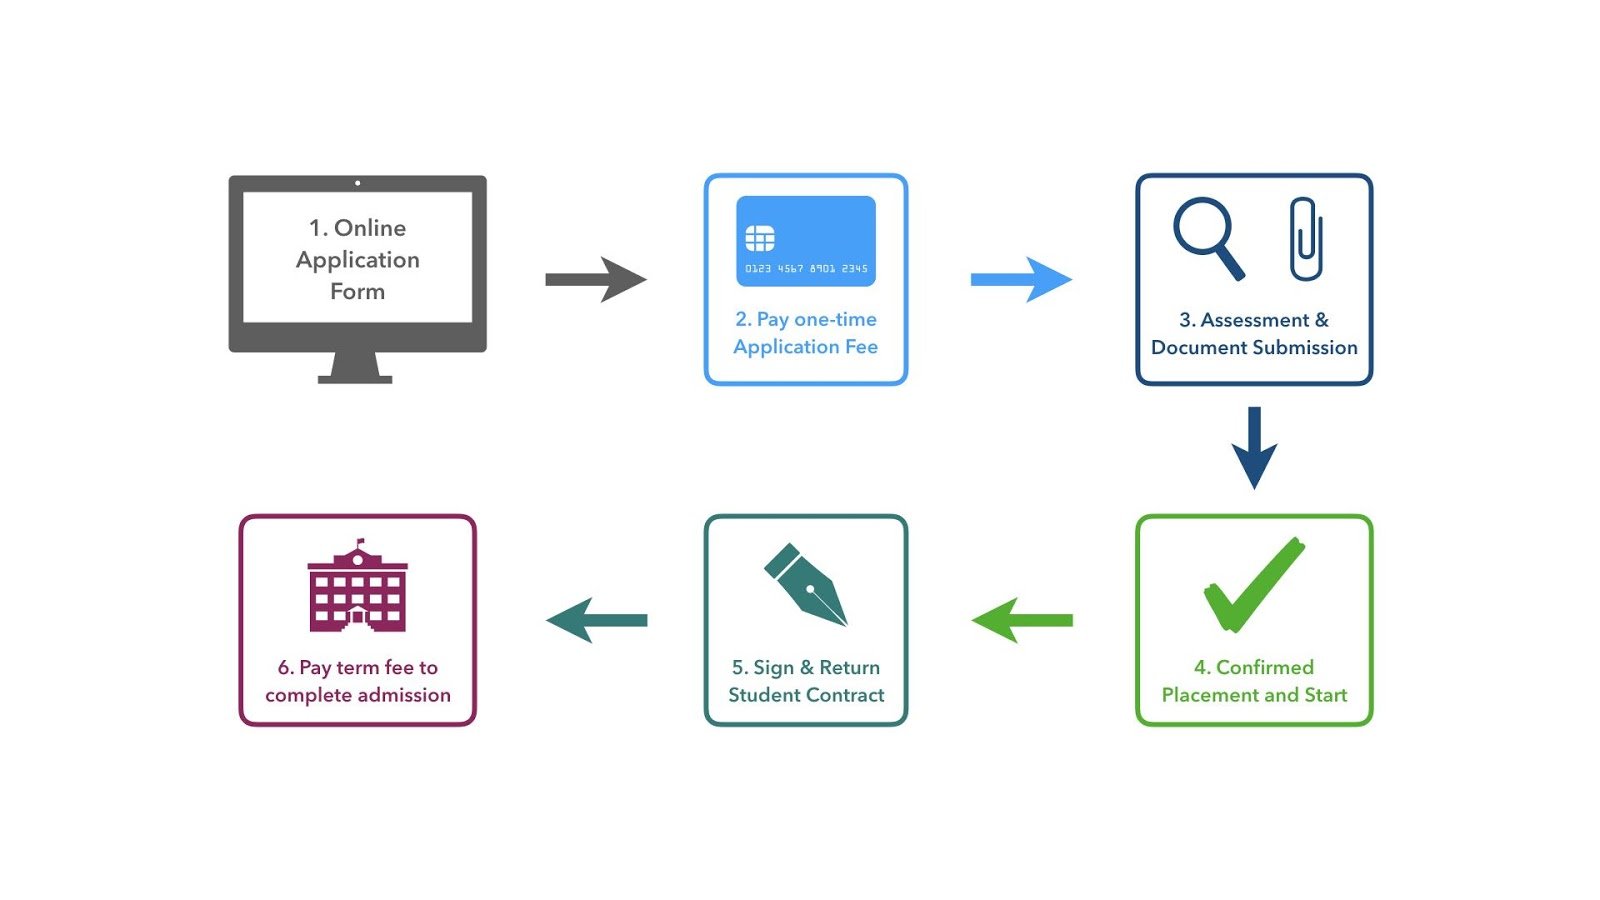 The Admissions and Applications Process at OWIS